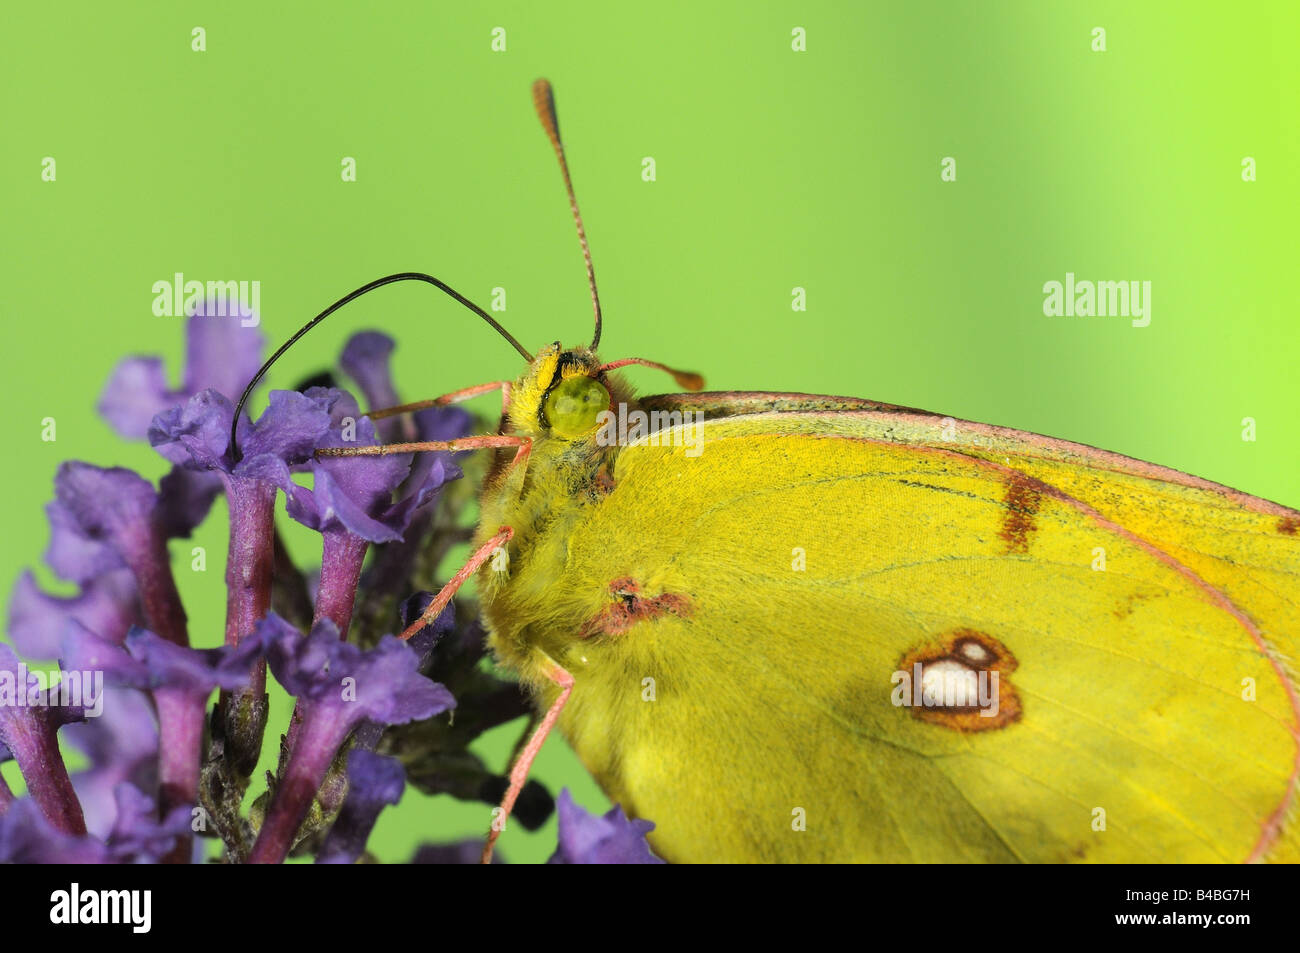 Clouded Yellow Butterfly Colias croceus feeding on Buddleia flower tongue extended - Stock Image